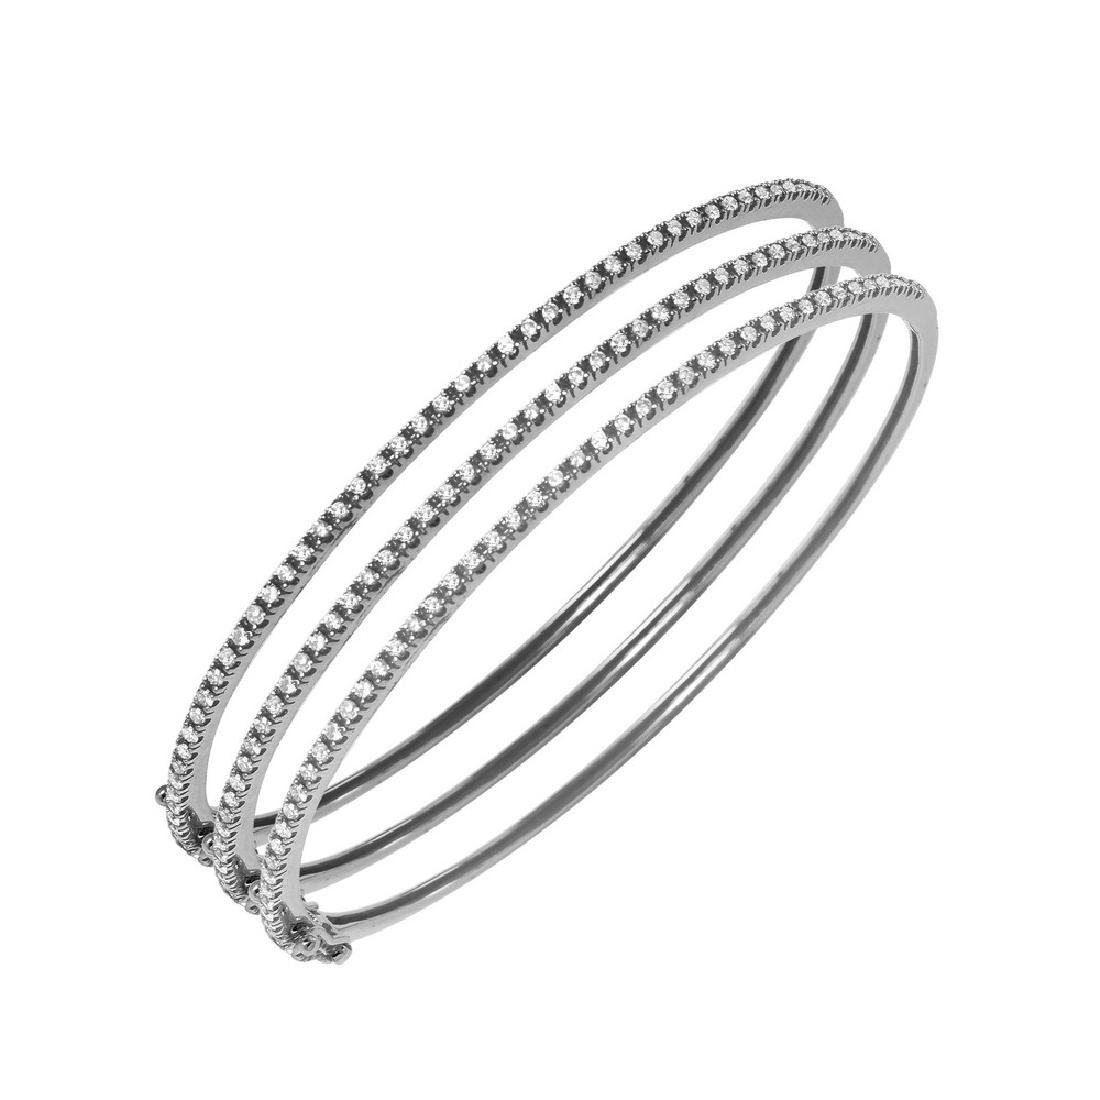 0.52CTW Diamond Bangle Bracelet in 14K White Gold - 2